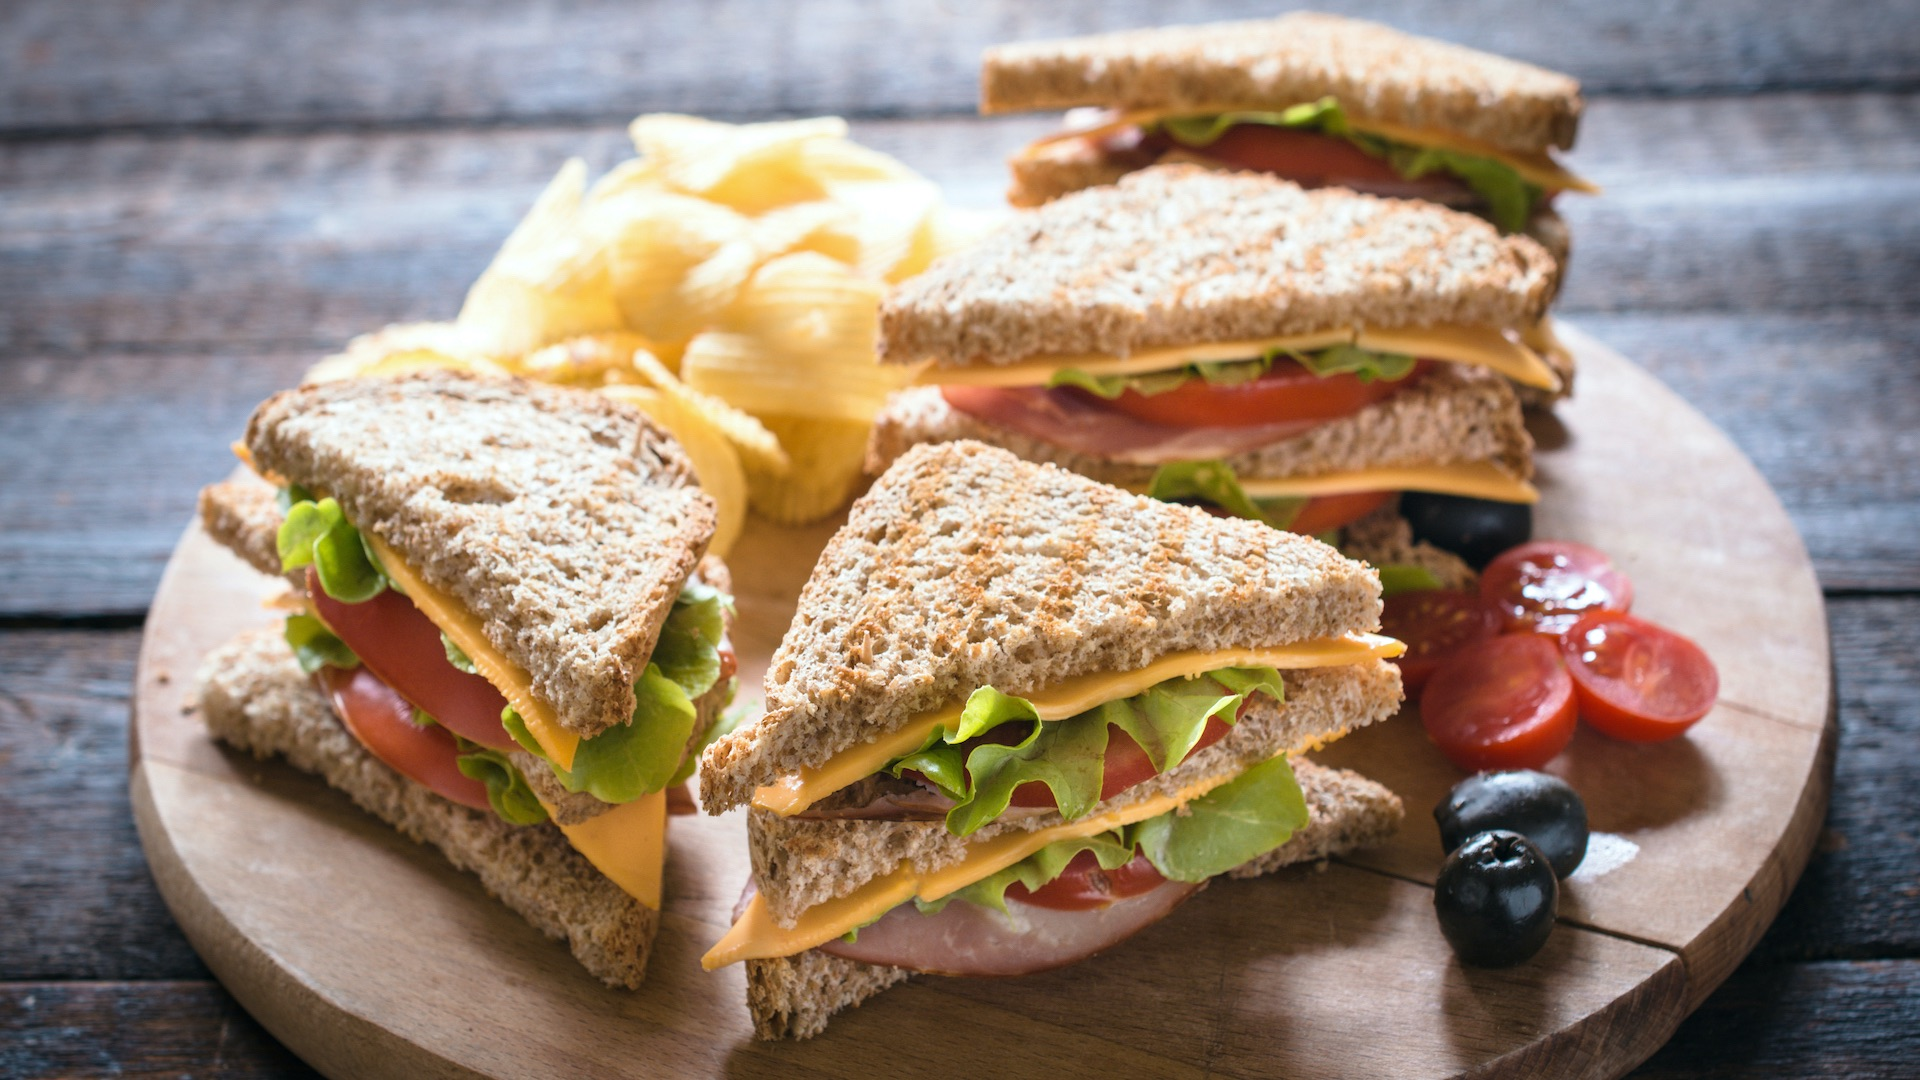 Sandwiches and fruit